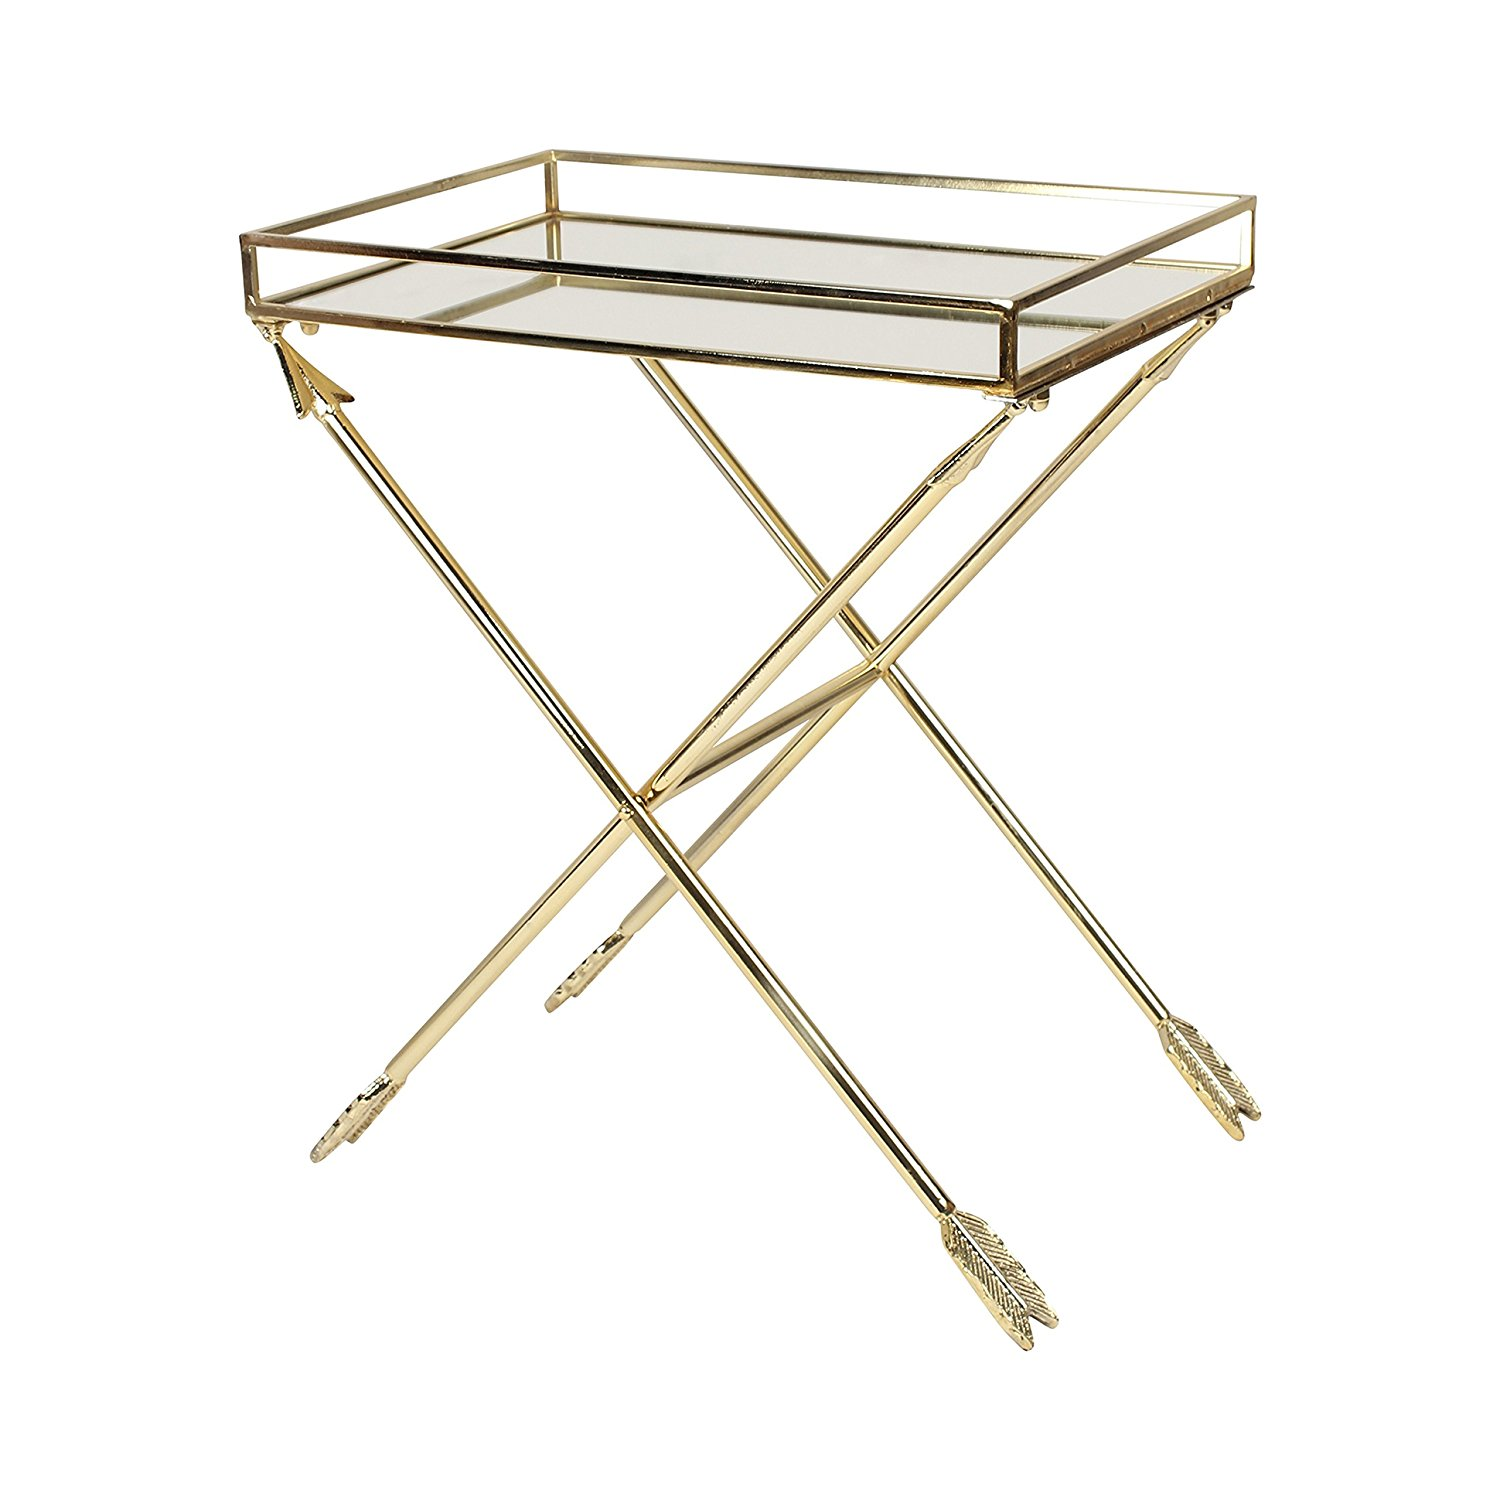 gold tray table find line metal accent get quotations kate and laurel madeira arrow with mirrored top storage trunk trend furniture marble end target pier lamps coffee wooden